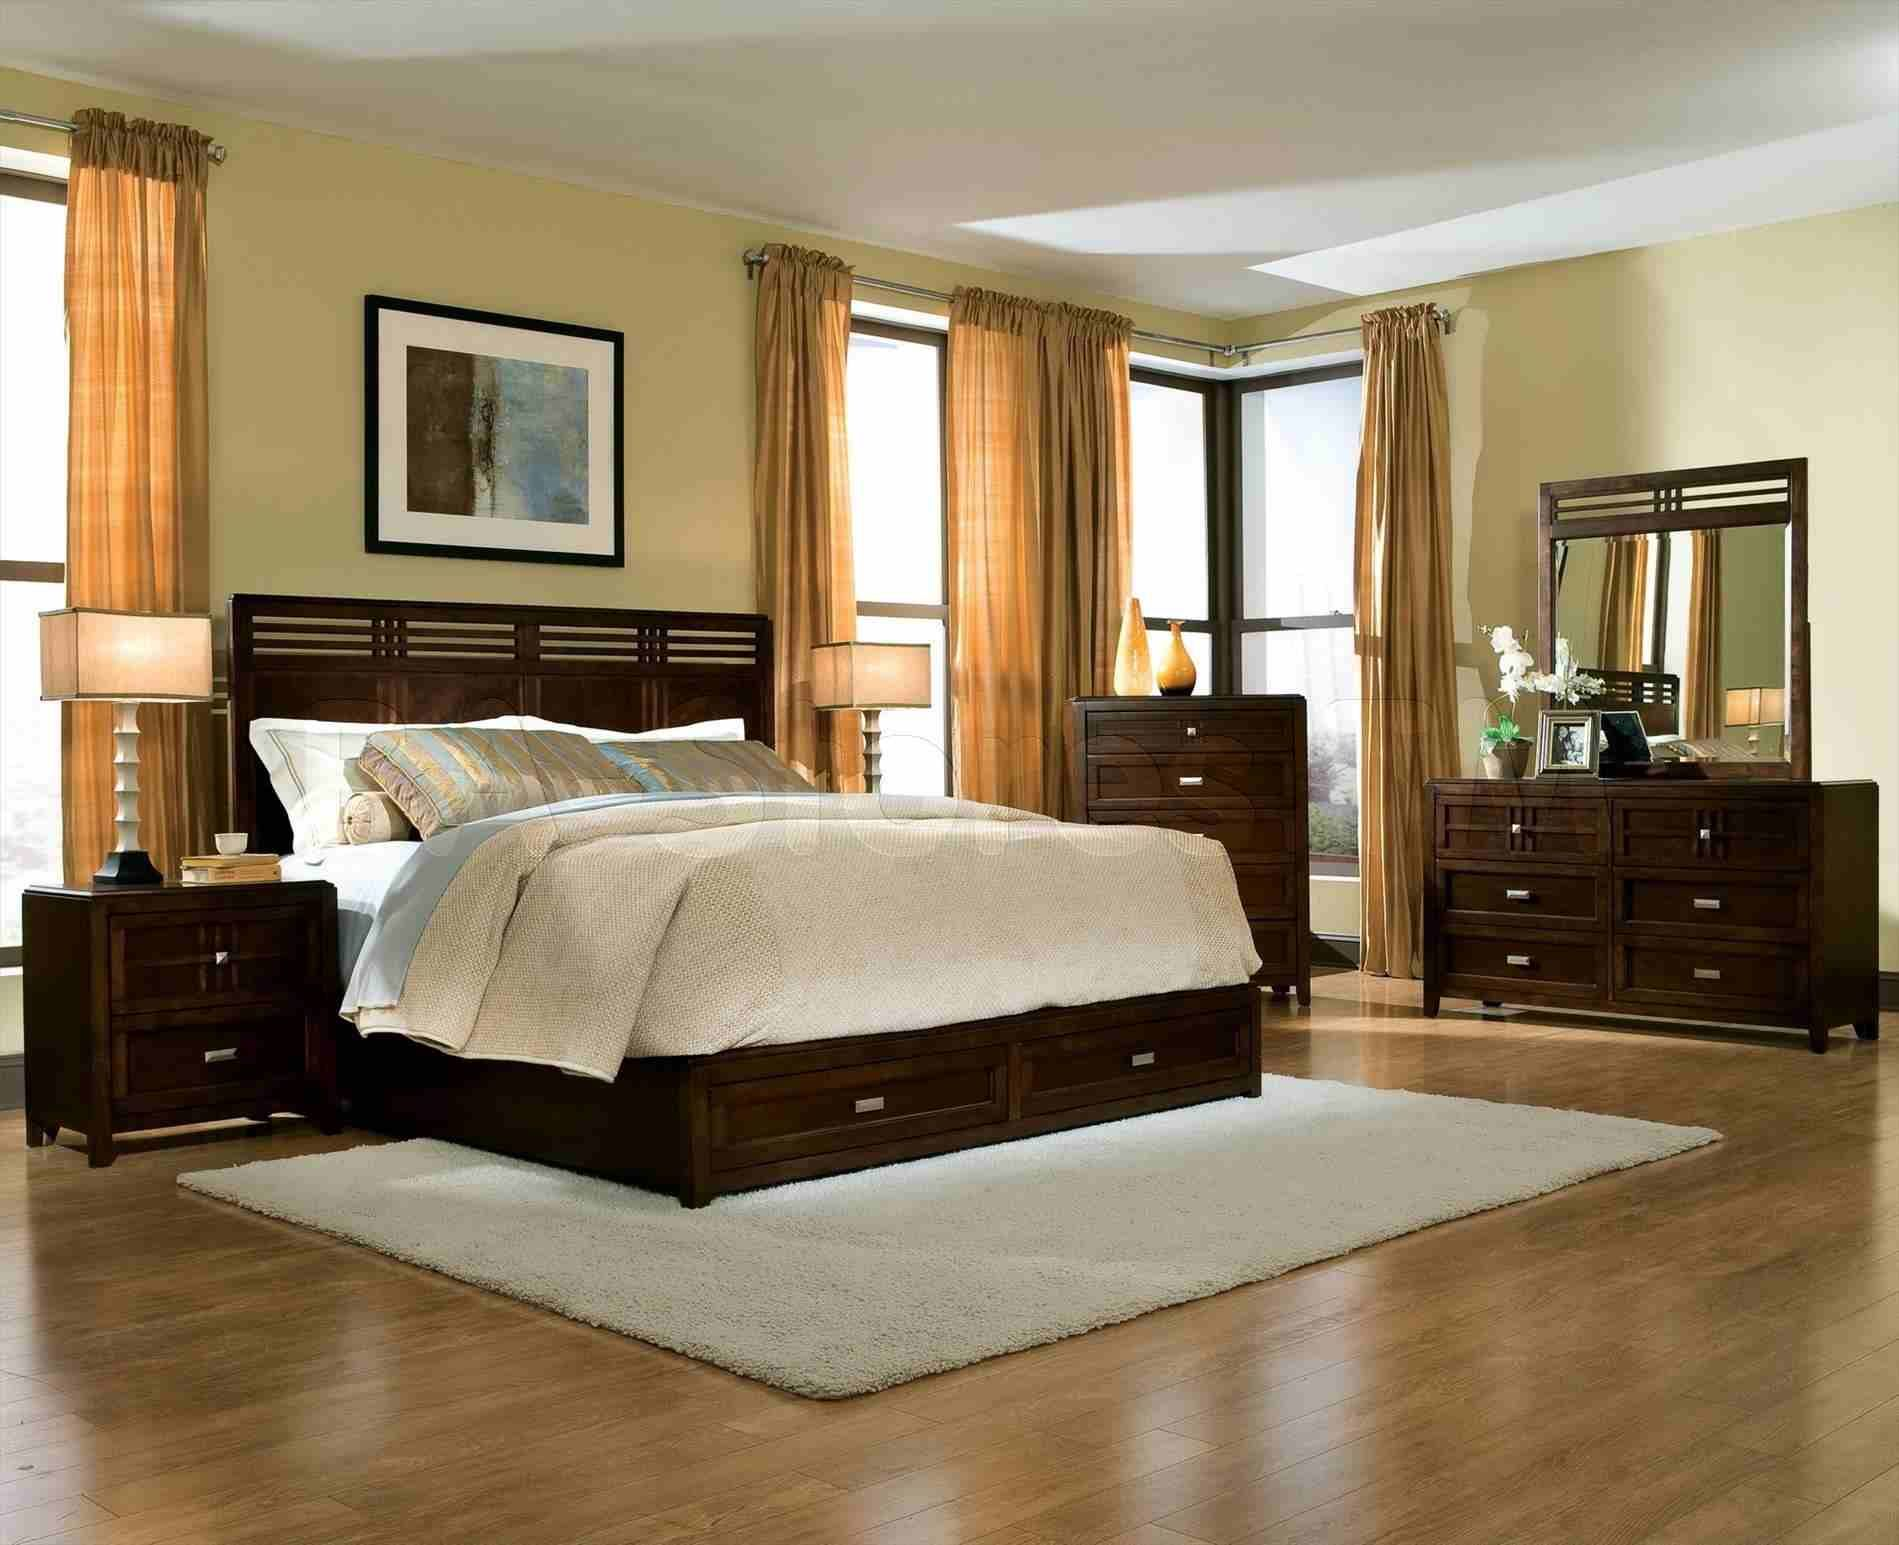 Modern Dark Wood Bedroom Furniture - dark wood floor bedroom 11